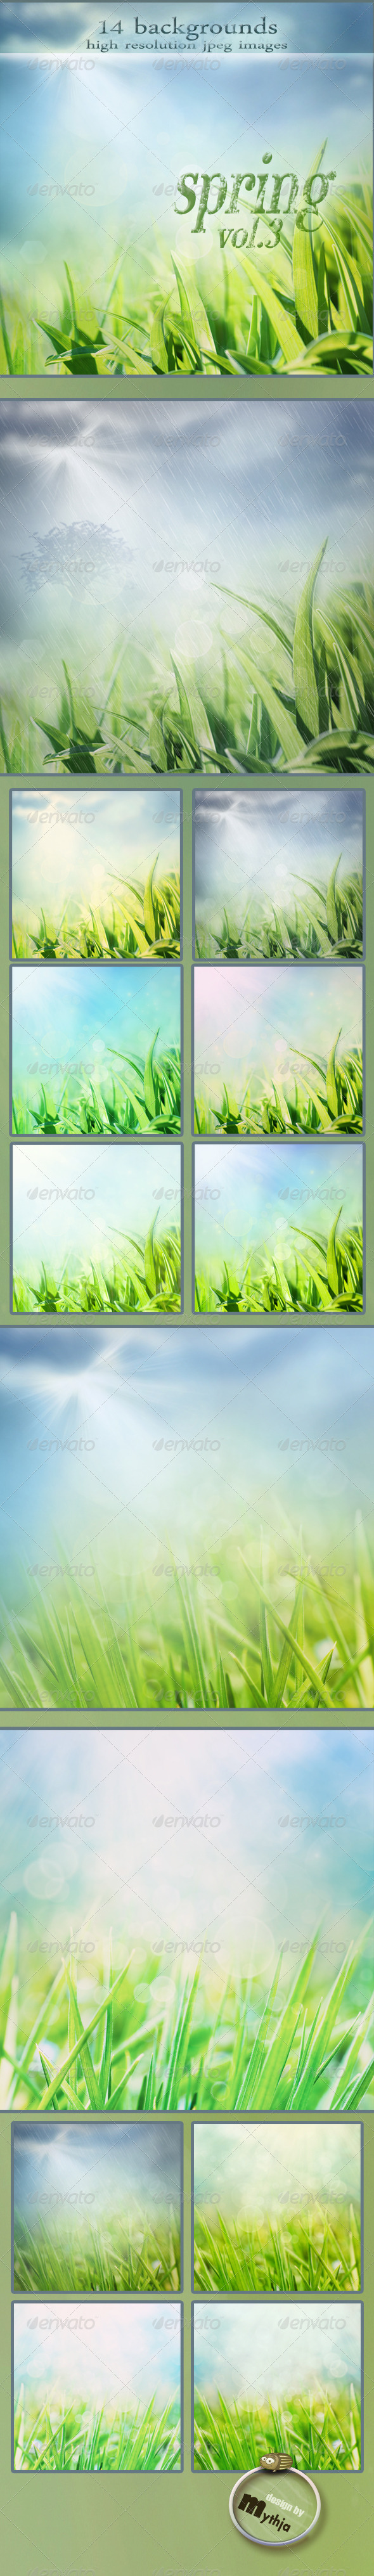 Nature Spring Backgrounds with Bokeh Effect vol.3 - Abstract Backgrounds